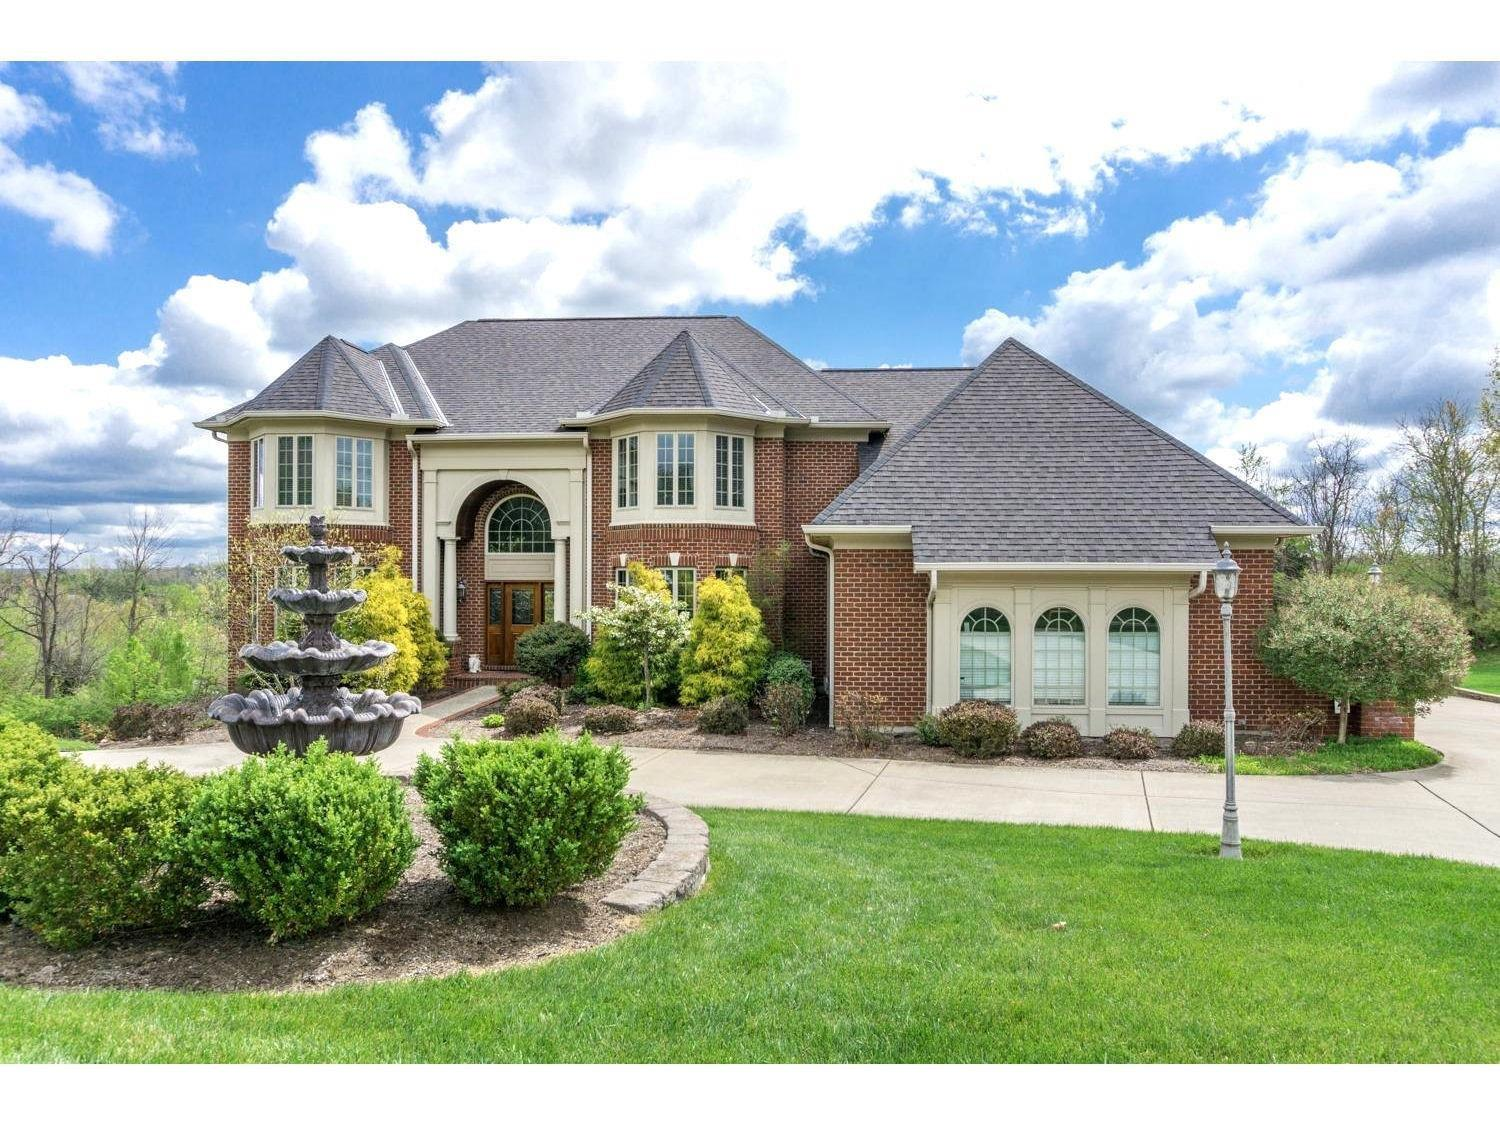 9270 Liberty Hill Ct Symmes Twp., OH